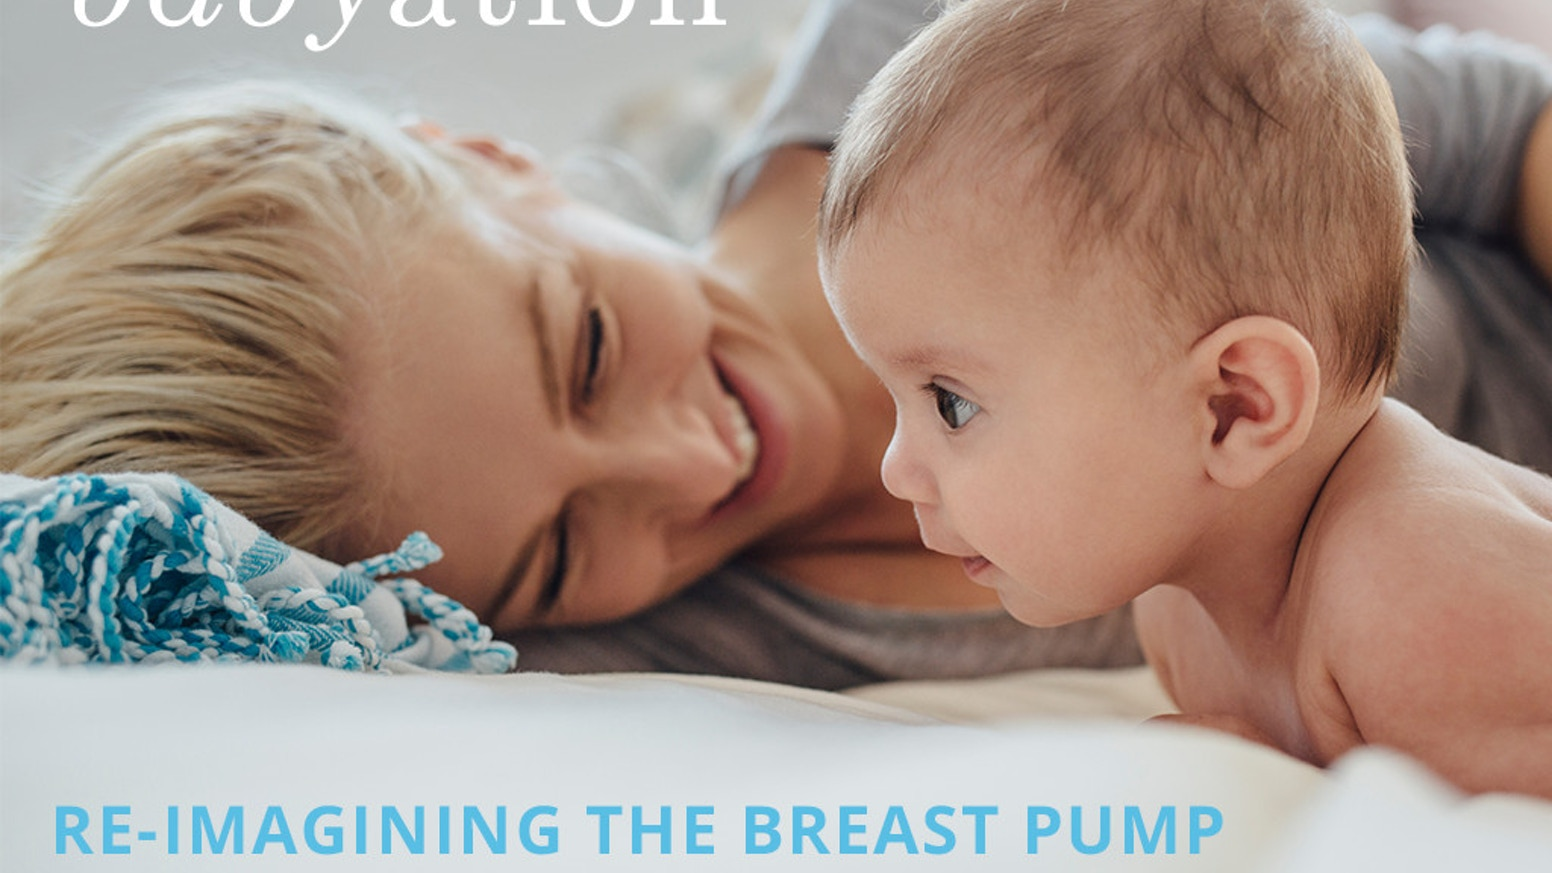 Introducing a Smart & App-Enabled, Discreet & Low-Profile, Quiet & Revolutionary Breast Pump: Brought to You by Babyation.